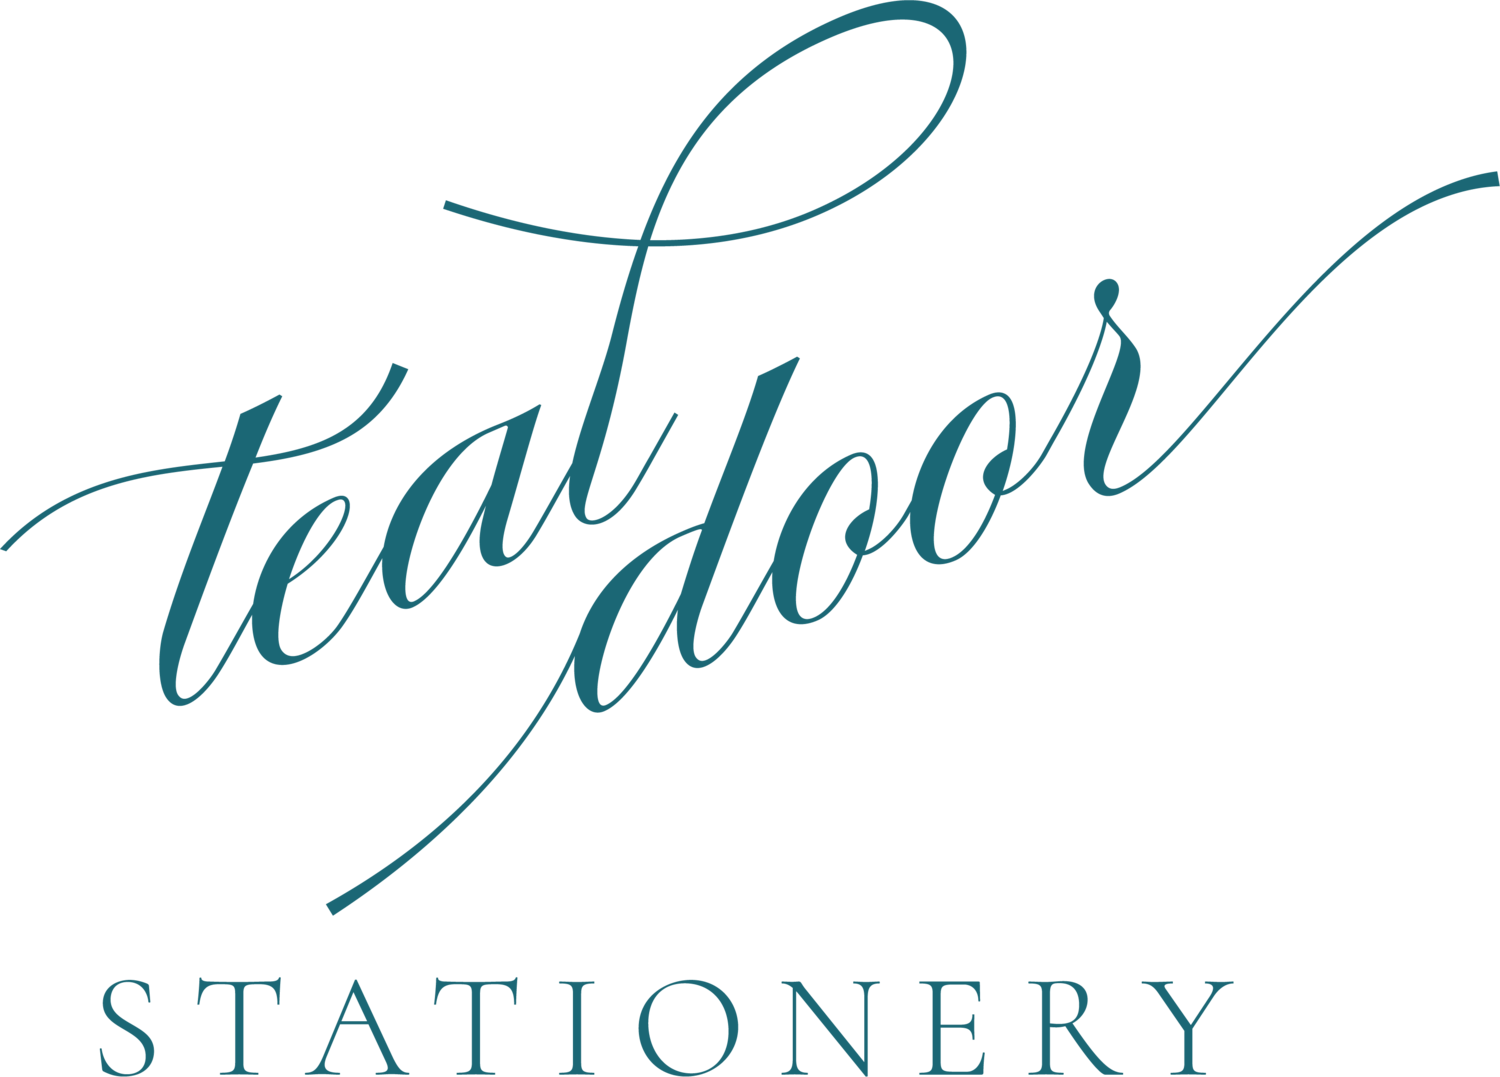 TEAL DOOR STATIONERY